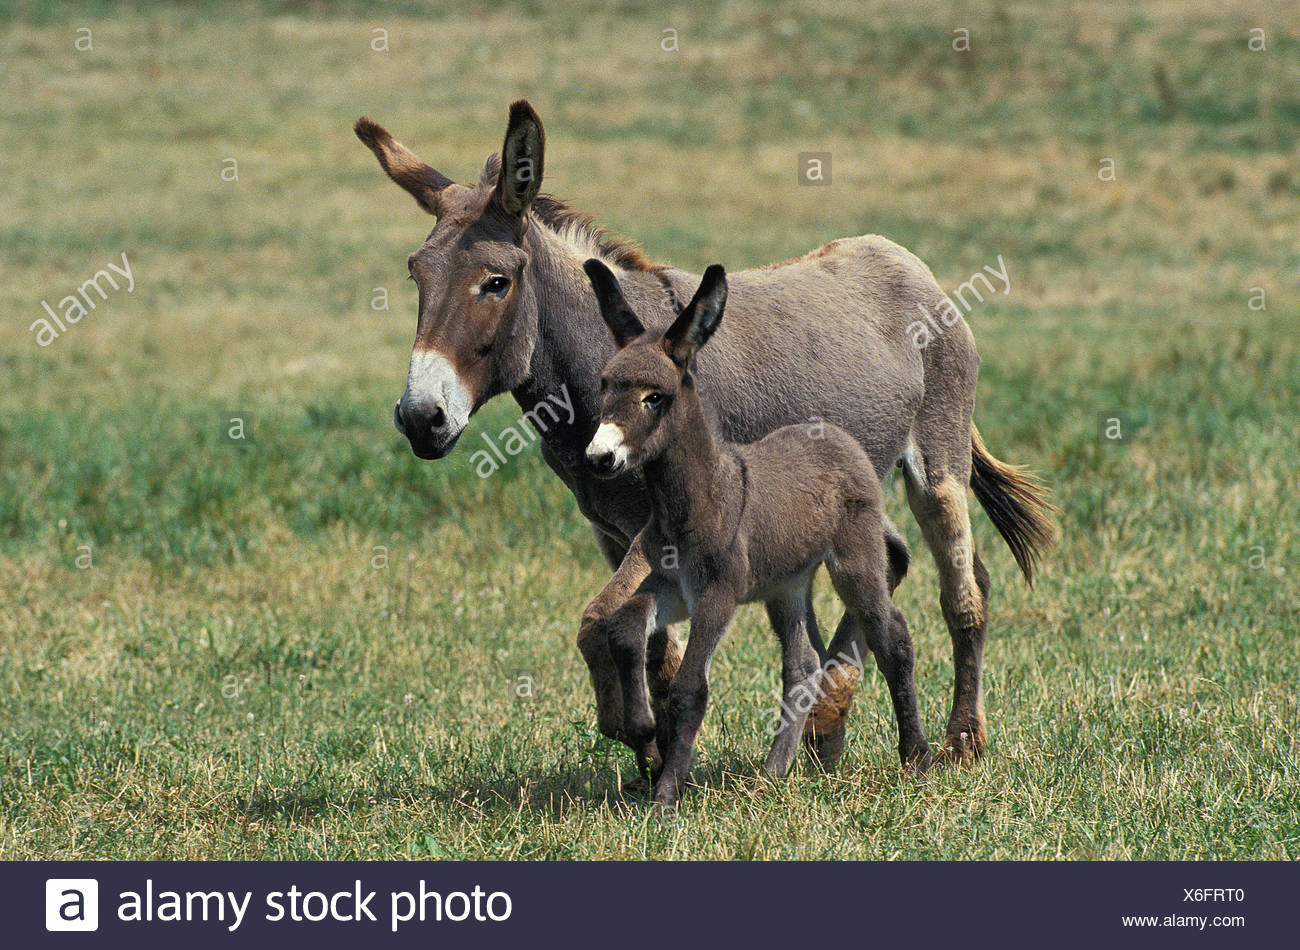 GREY DONKEY, A FRENCH BREED, MARE WITH FOAL TROTTING THROUGH MEADOW - Stock Image